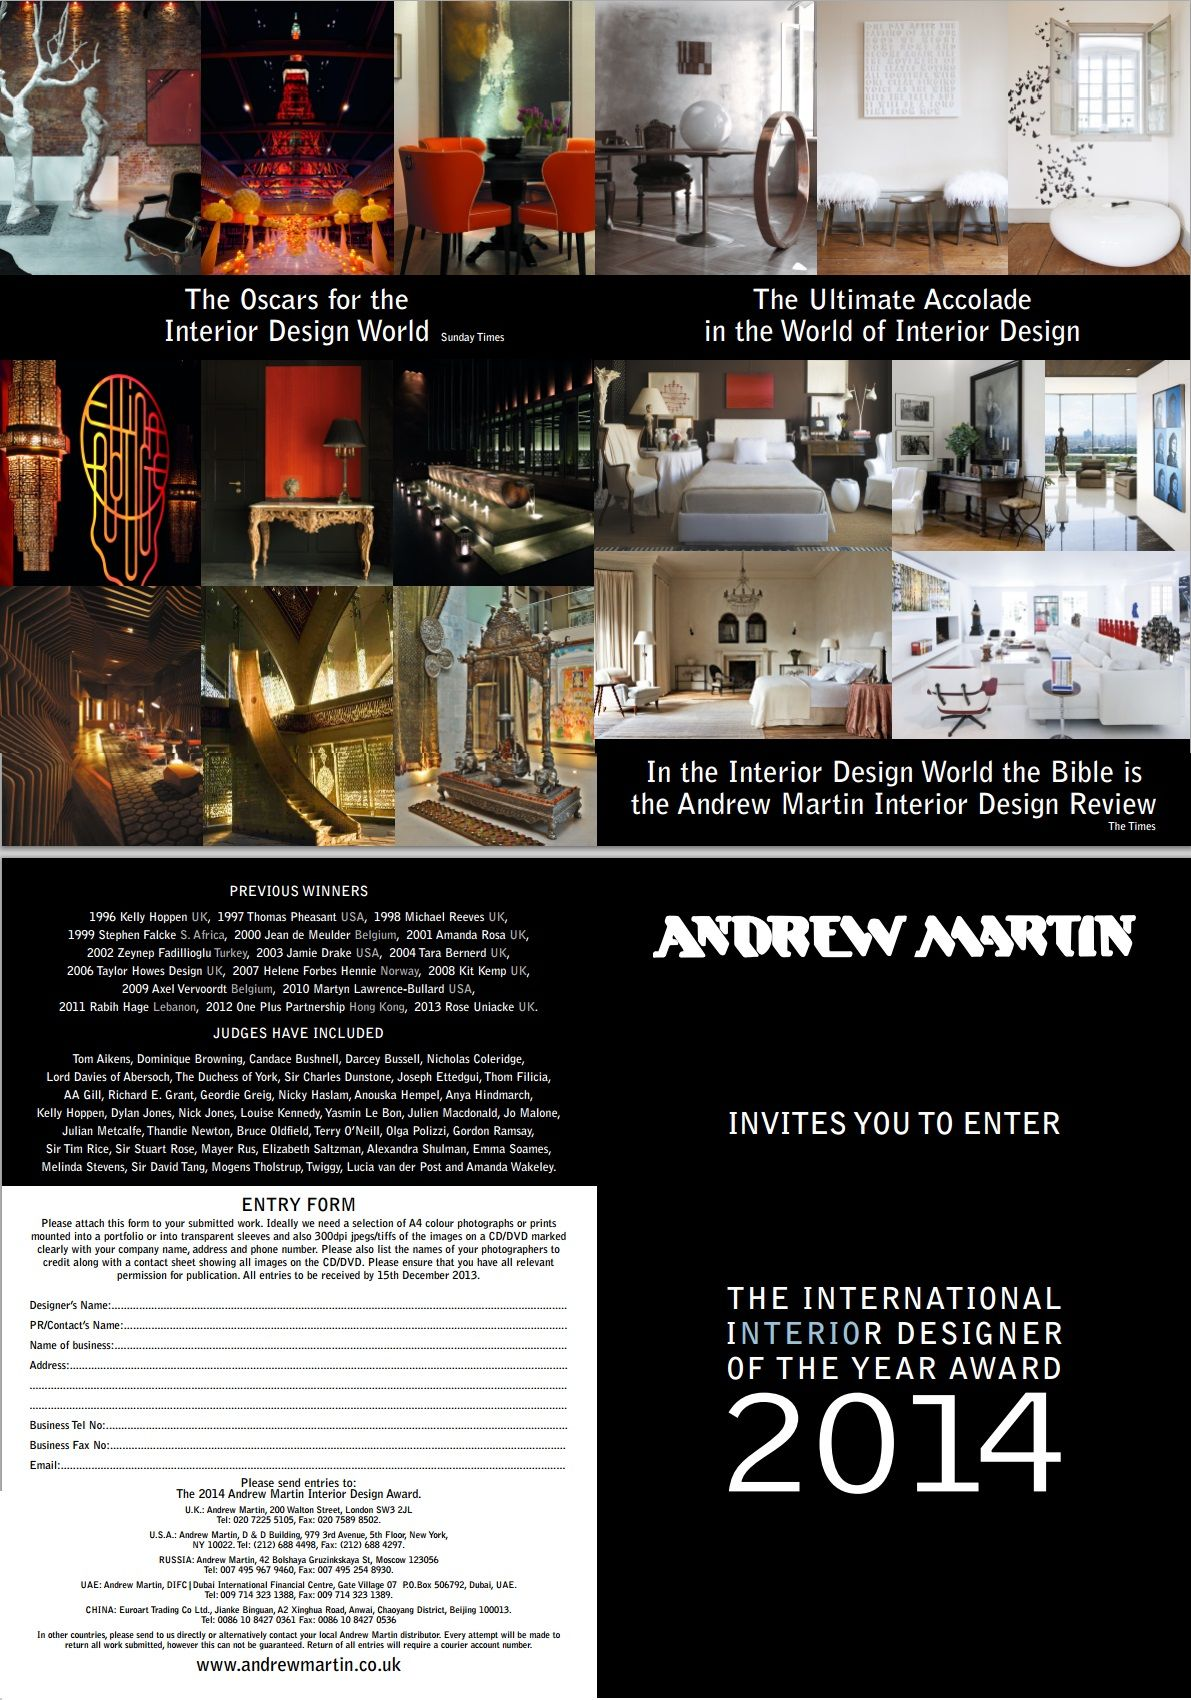 Entry form for Interior National Designer of the Year 2014 in the